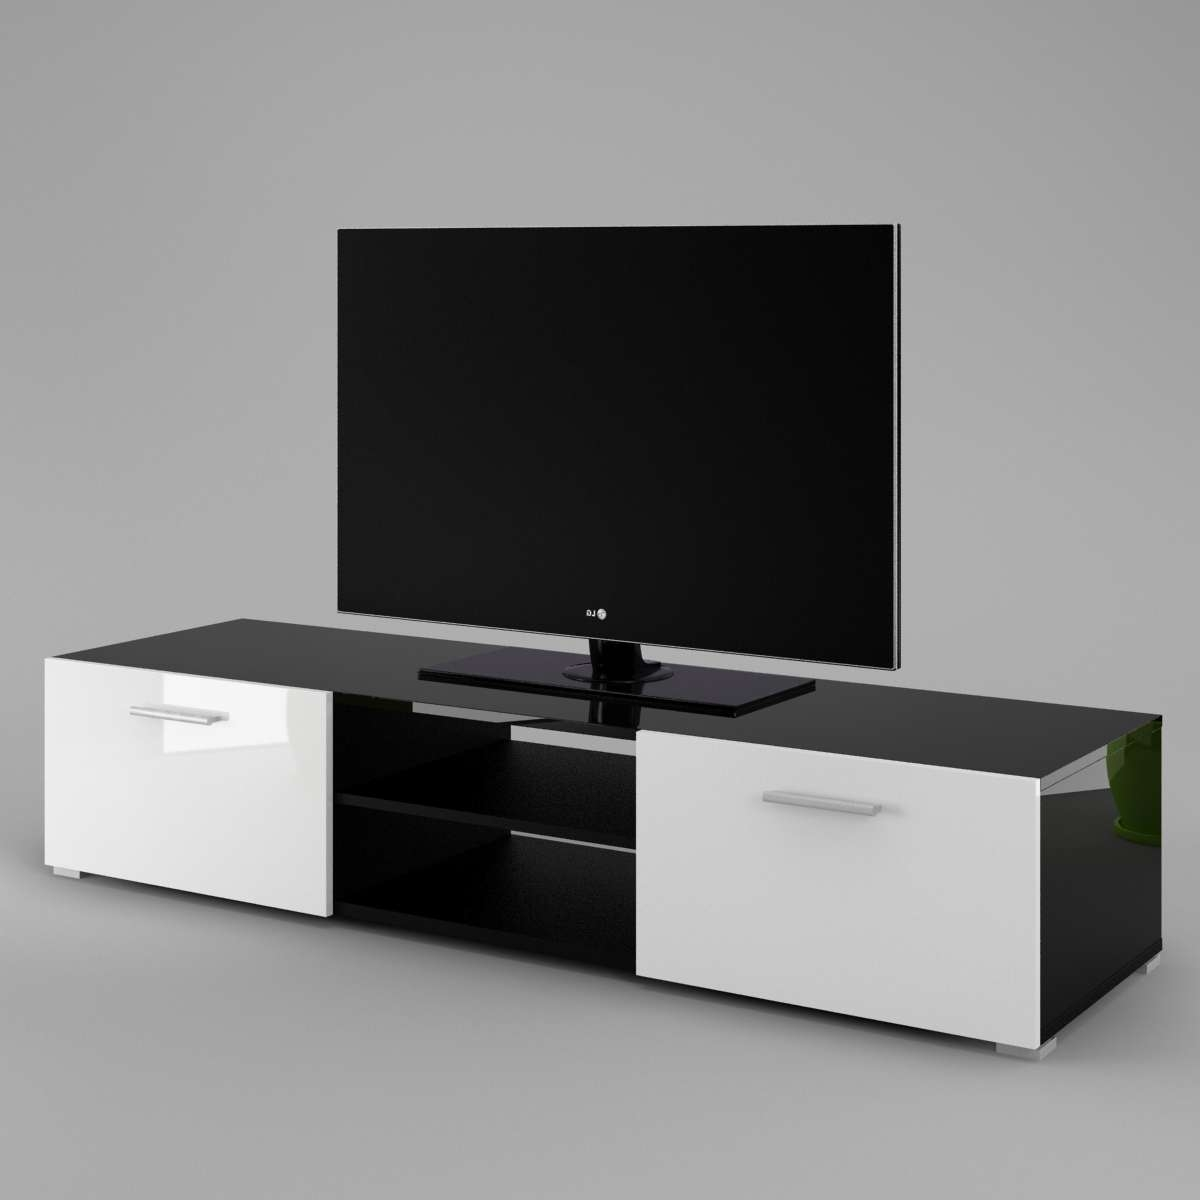 Tv Cabinet Luna – Labi Furniturelabi Furniture In Black Gloss Tv Cabinets (View 13 of 20)